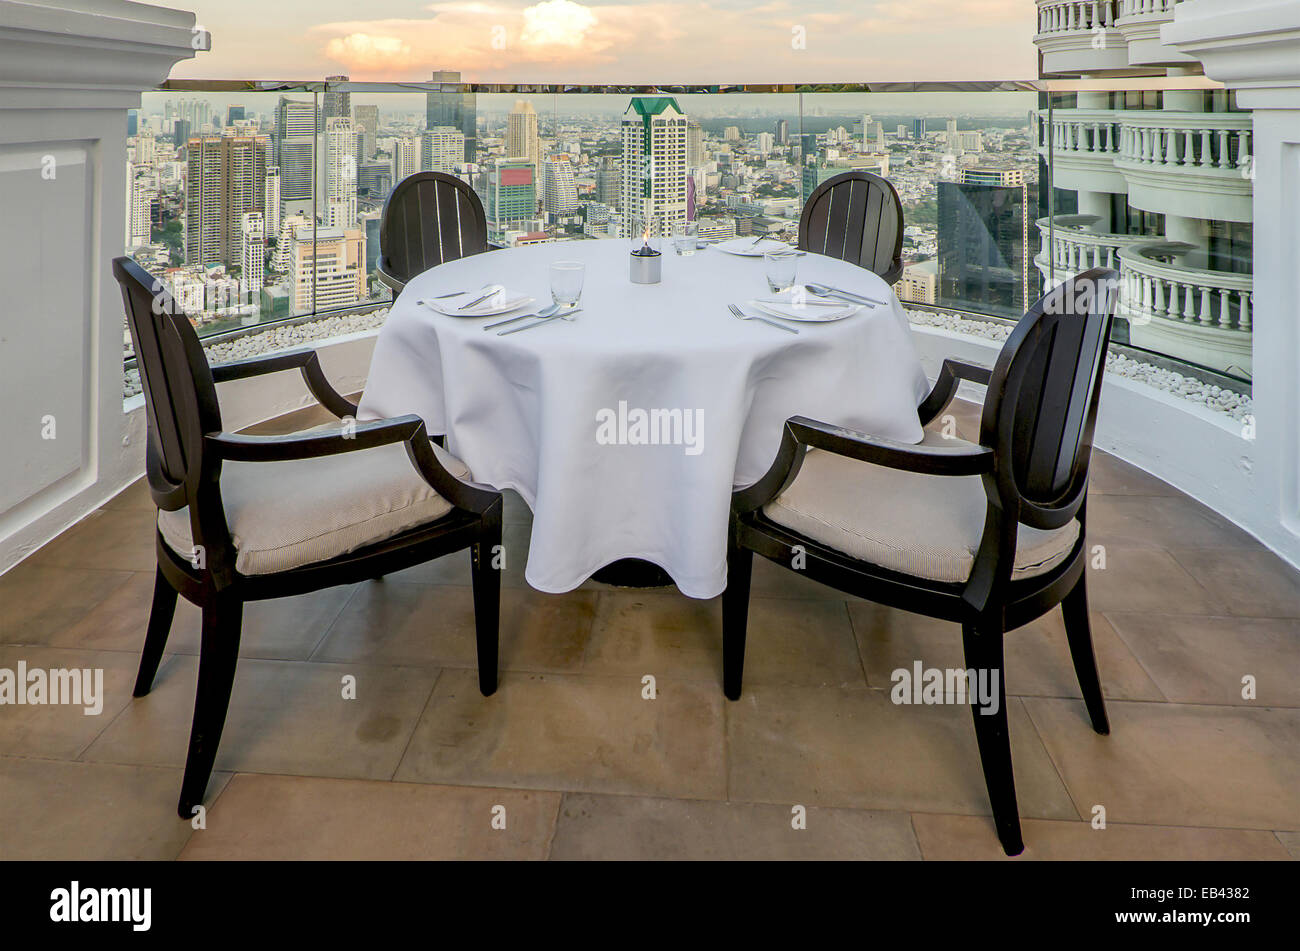 Seat and Table on terrace with high view - Stock Image